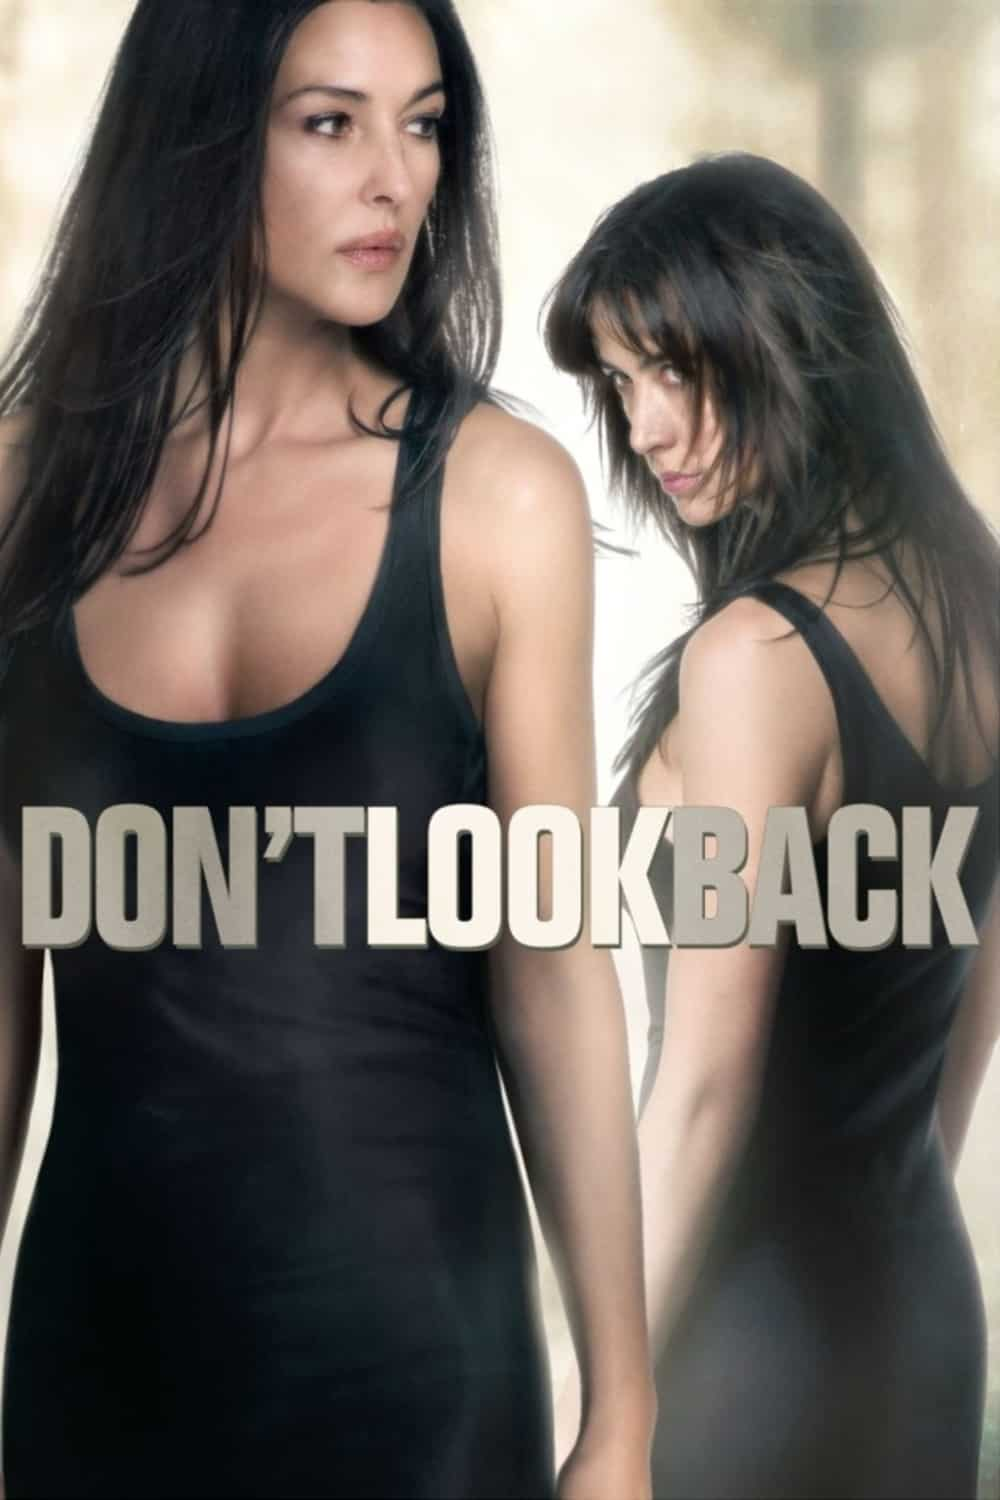 Don't Look Back, 2009